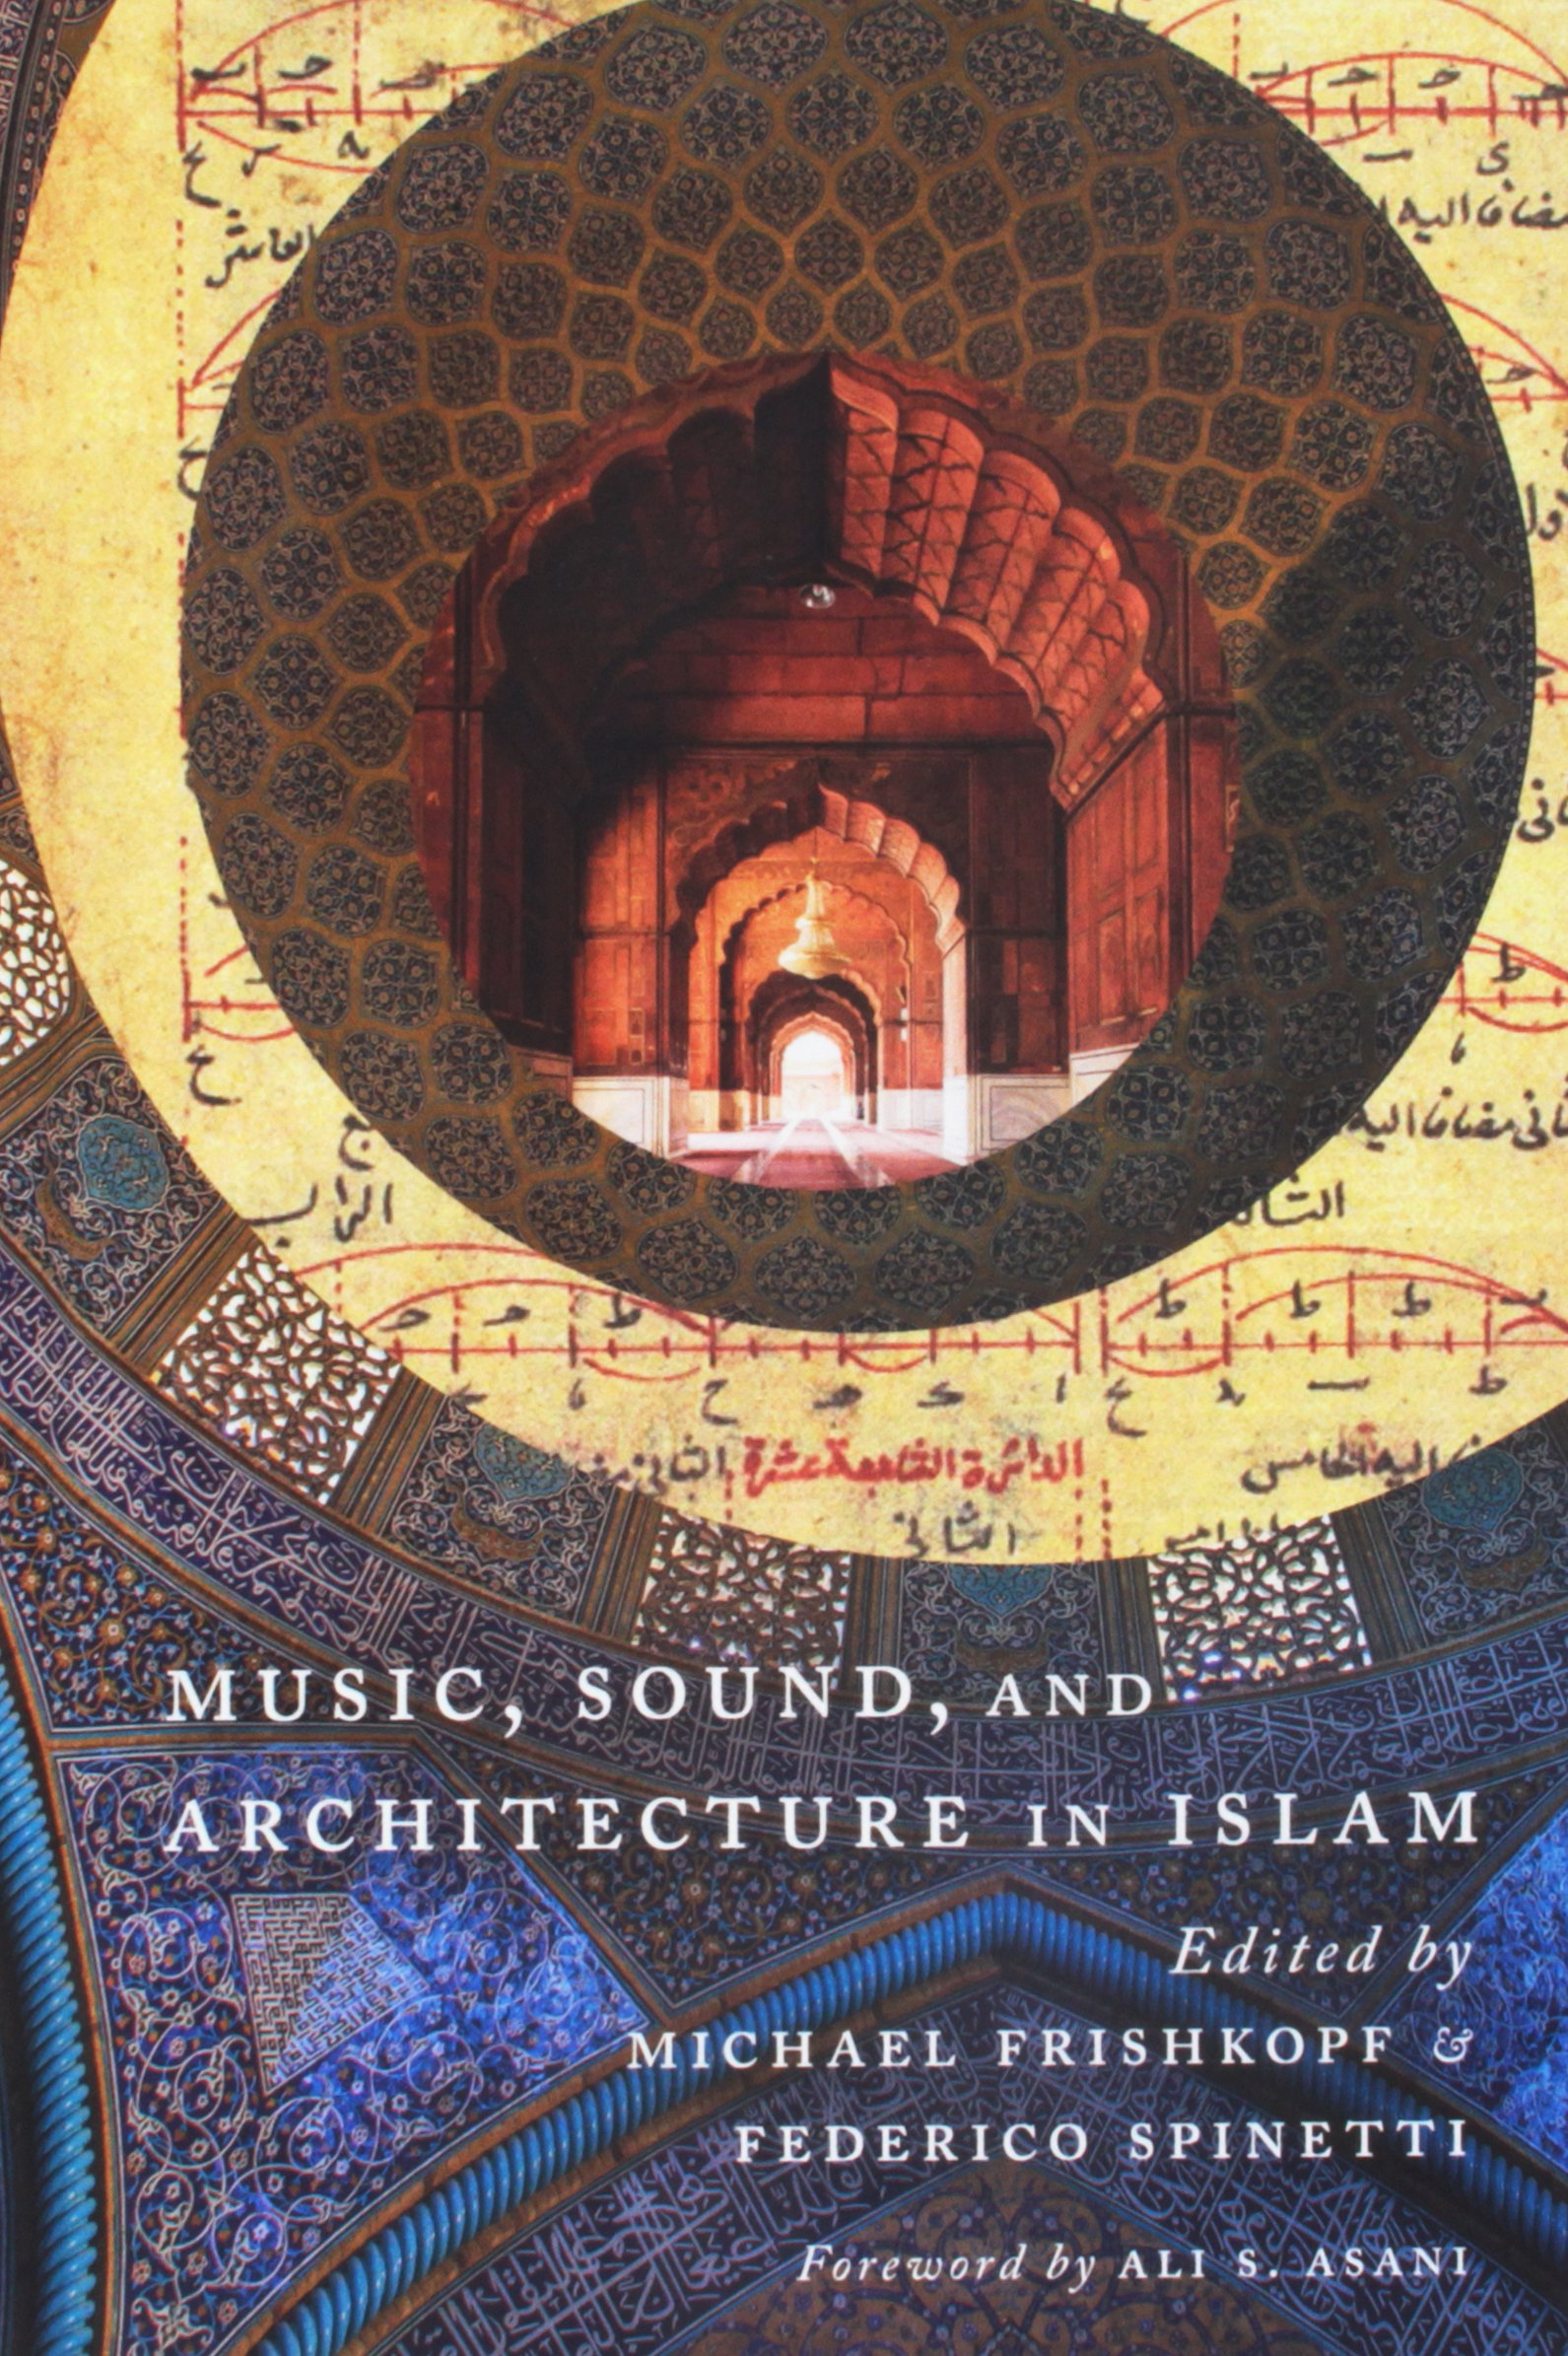 Music, Sound, and Architecture in Islam